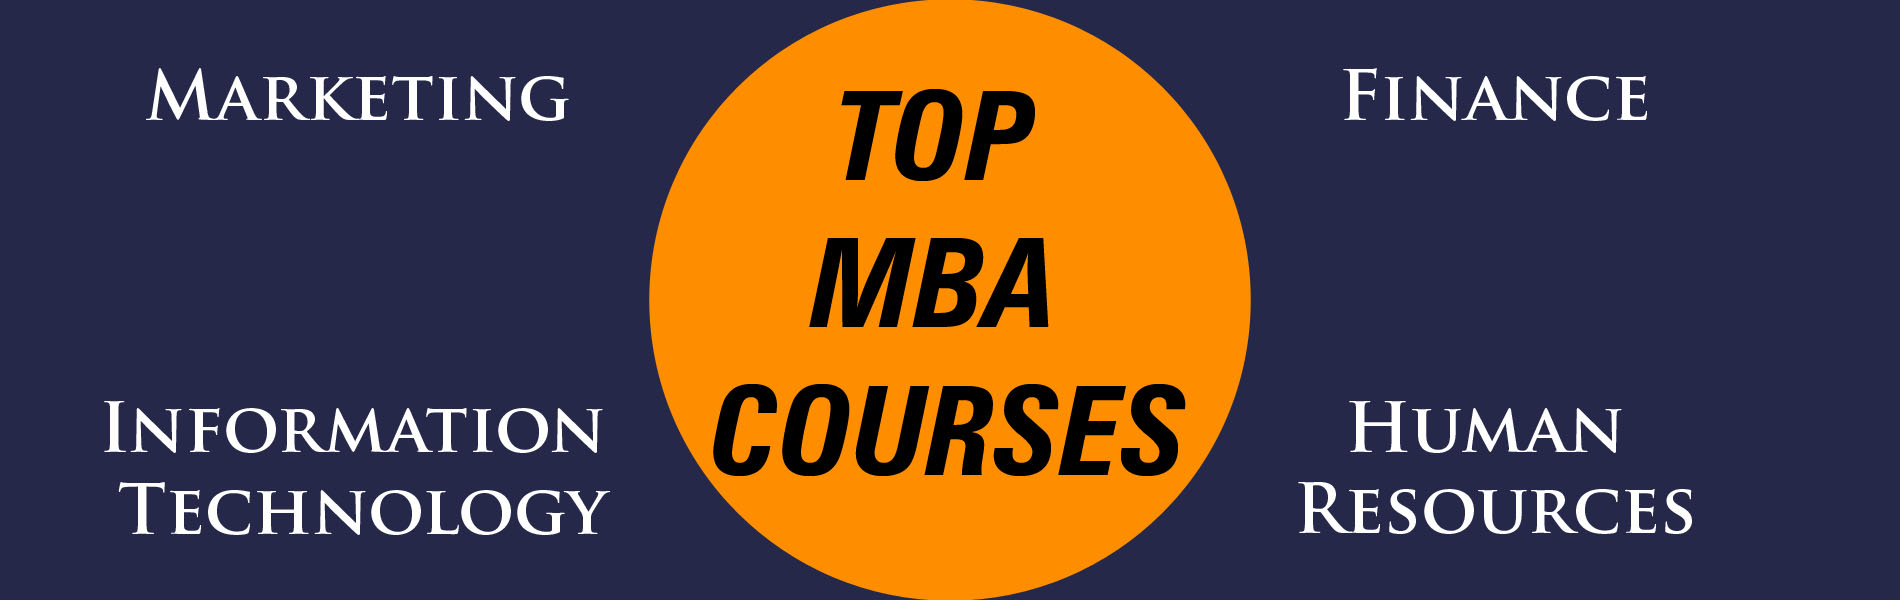 mba-courses, Arya Logo, Arya College of Engineering and iT, Arya 1st Old Campus, Arya SP42, Arya College Jaipur, Arya College, ACEIT, Best Engineering College in Rajasthan, Arya Kukas, Arya Jaipur, Top 5 Engineering College in Rajasthan